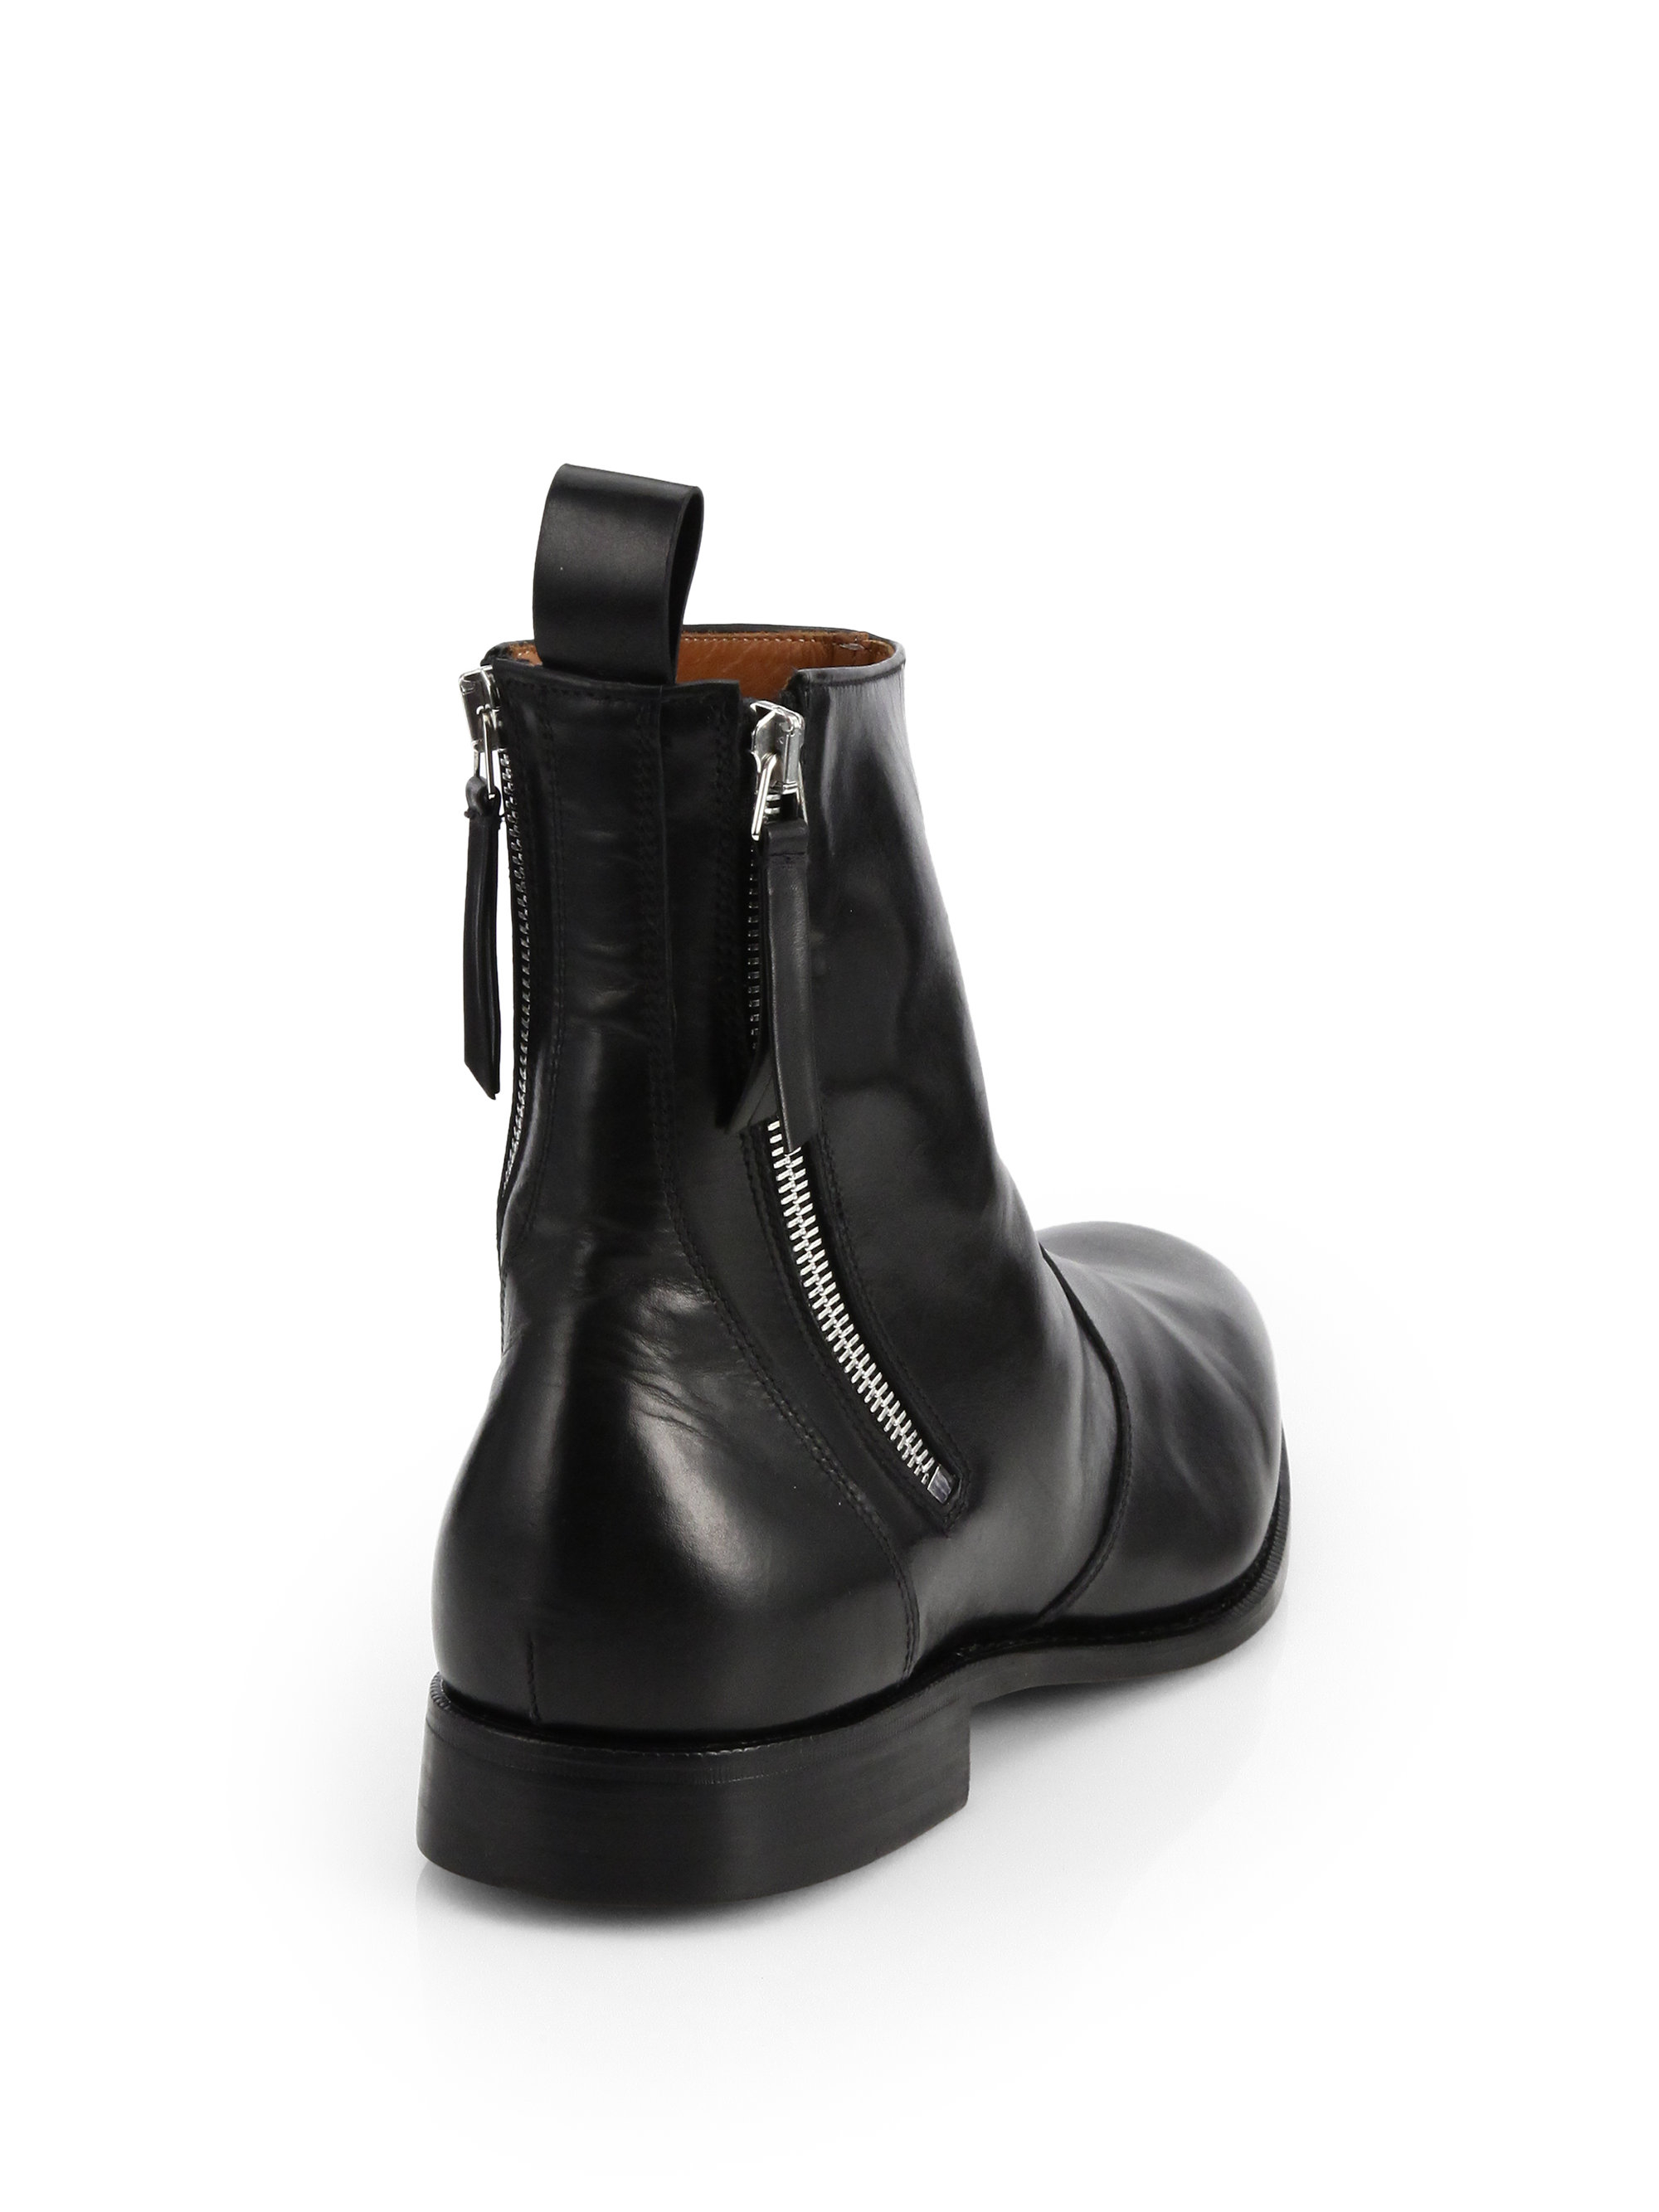 Lyst Givenchy Leather Tuxedo Boots In Black For Men